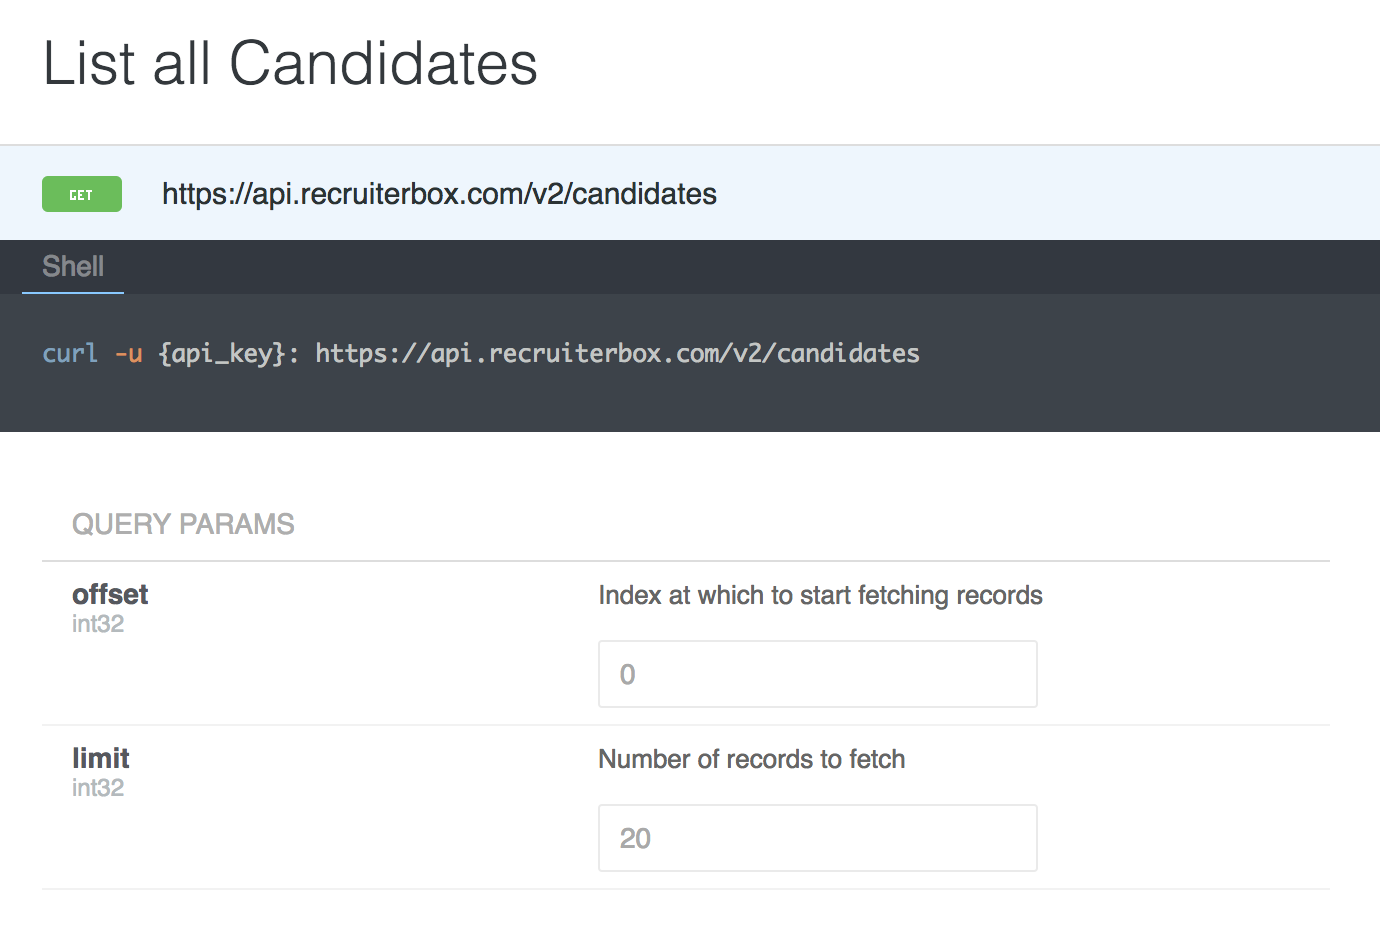 Paginating a list of candidates by fetching 20 items per page